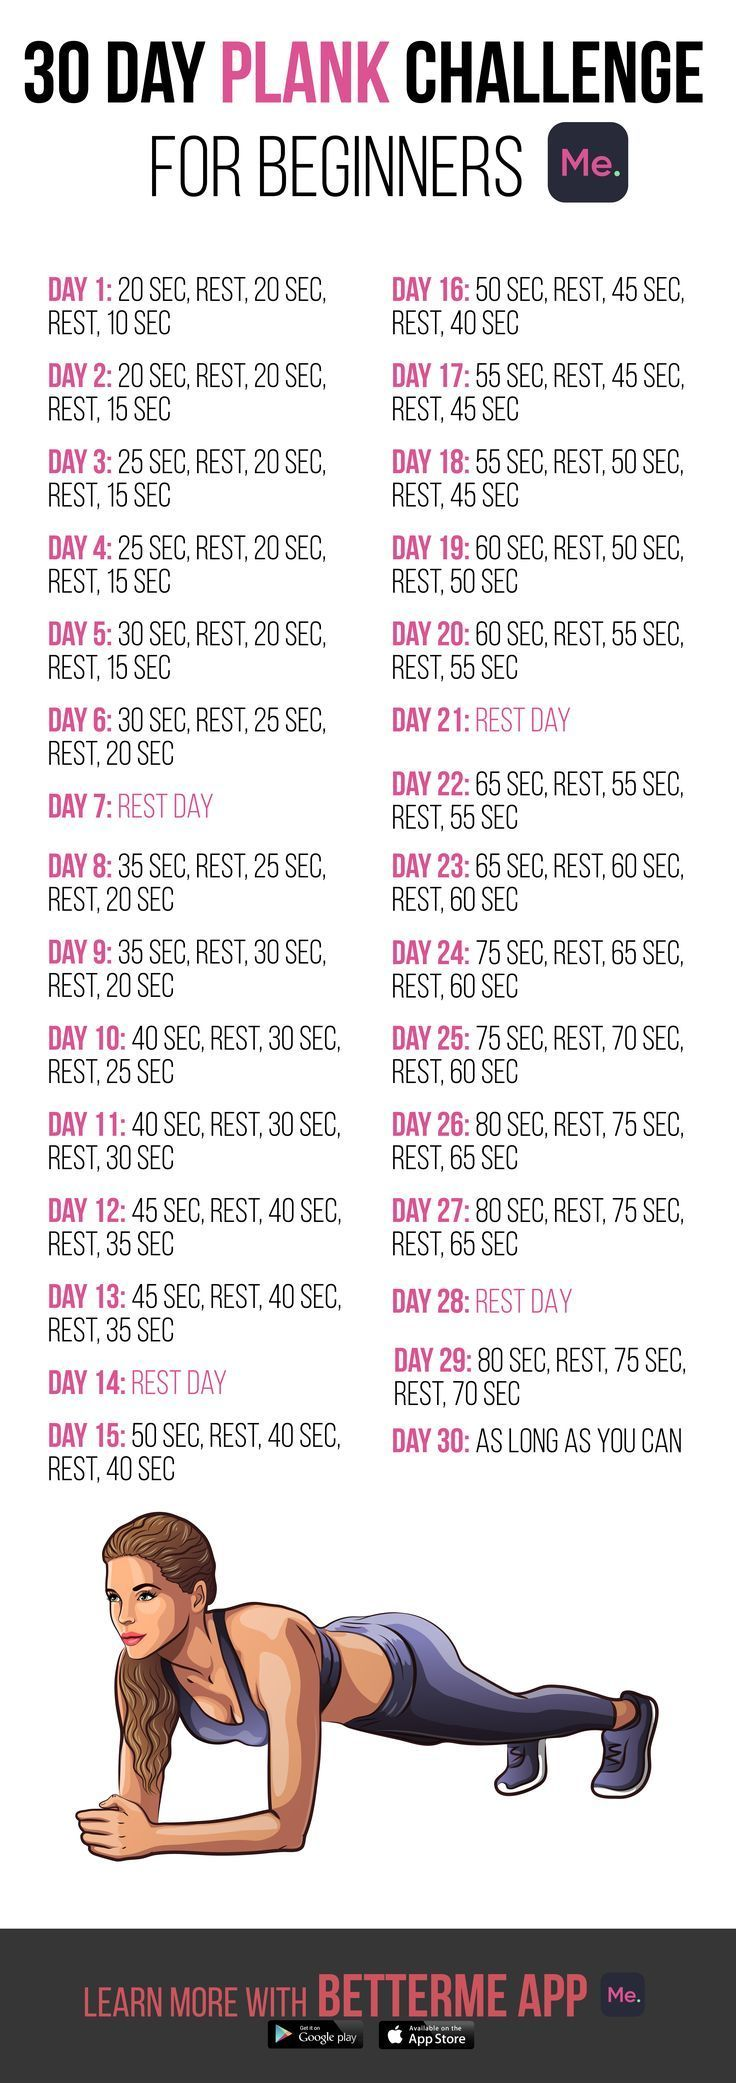 #Fitness #Motivation #PlankChallenge Get Ultimate 28-Days Meal & Workout Plan! Click to download the...